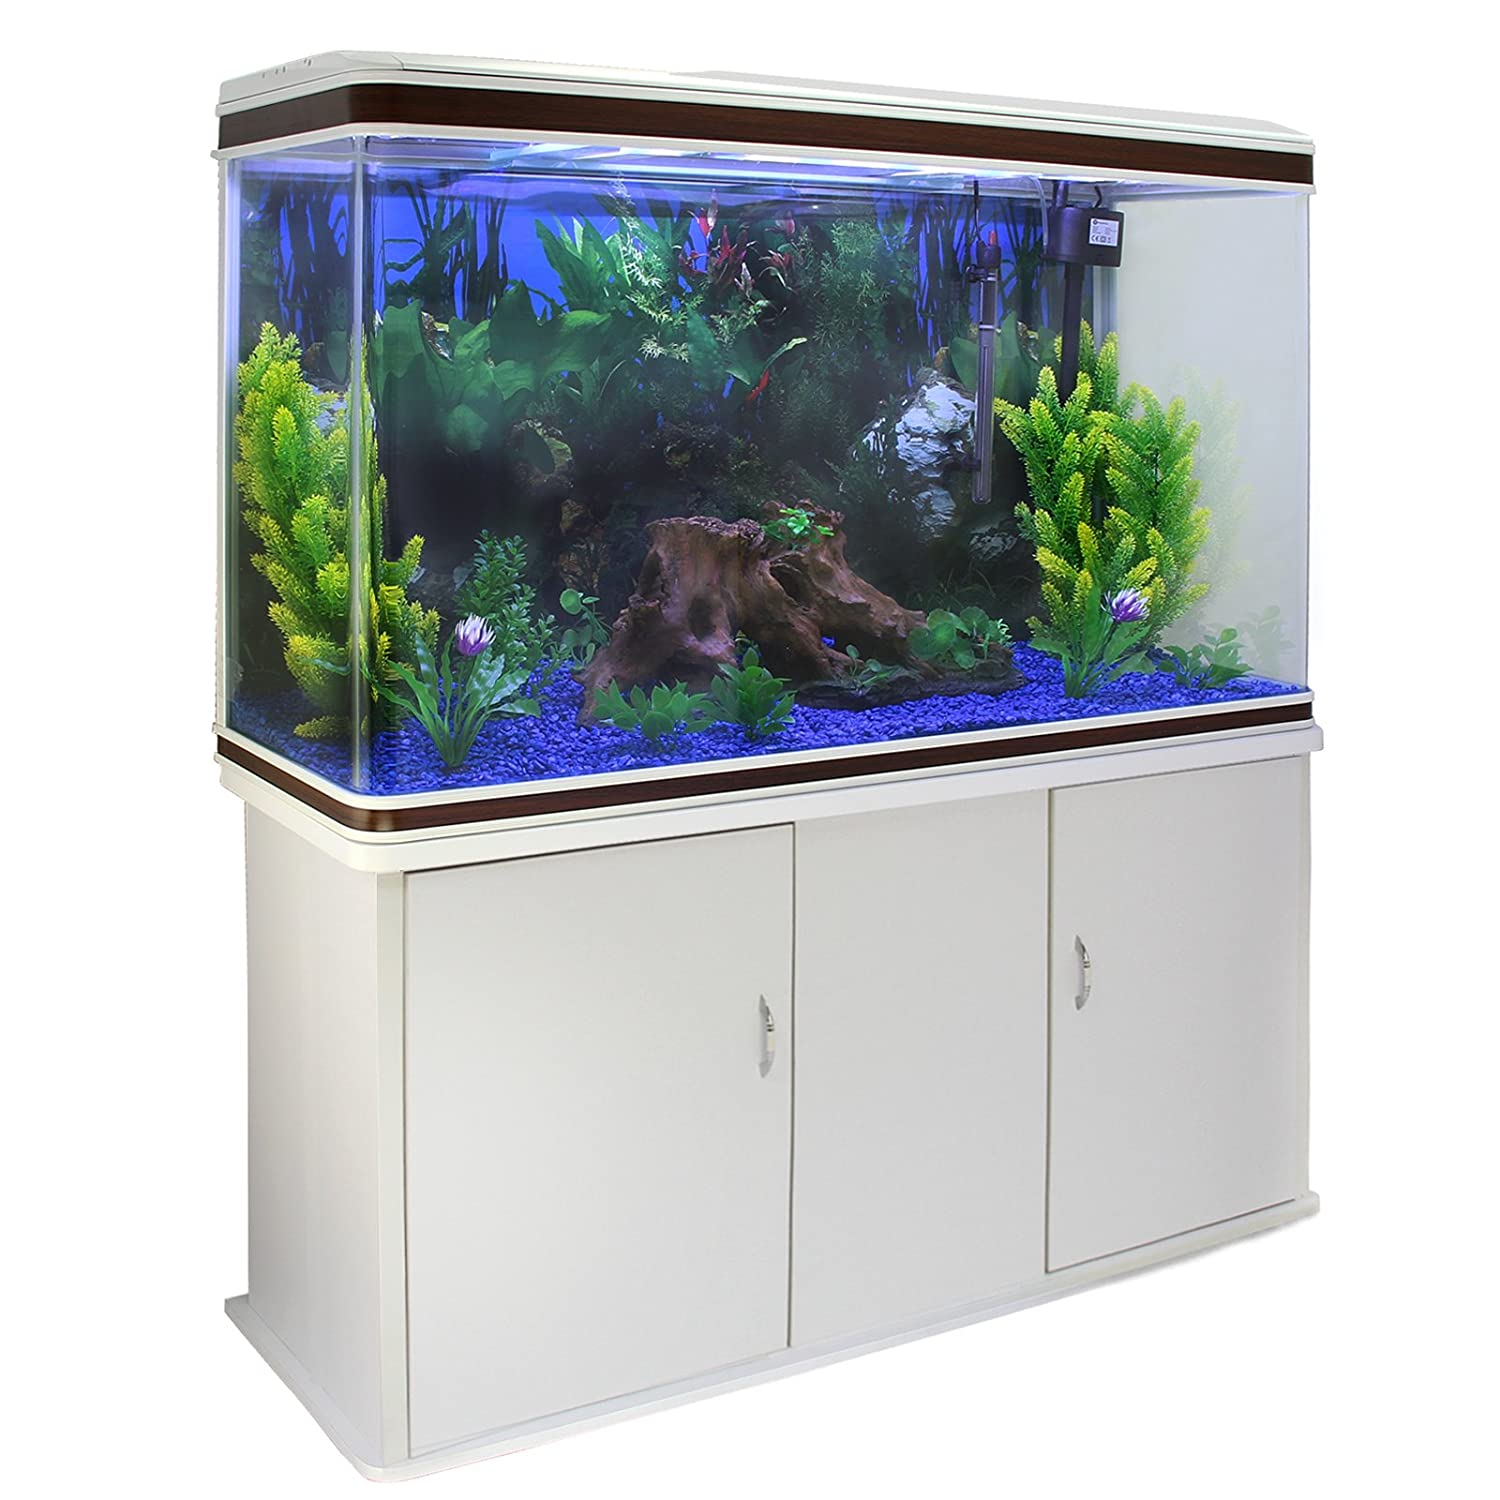 Inspirational ideas of small fish tanks for sale best for Amazon fish tanks for sale